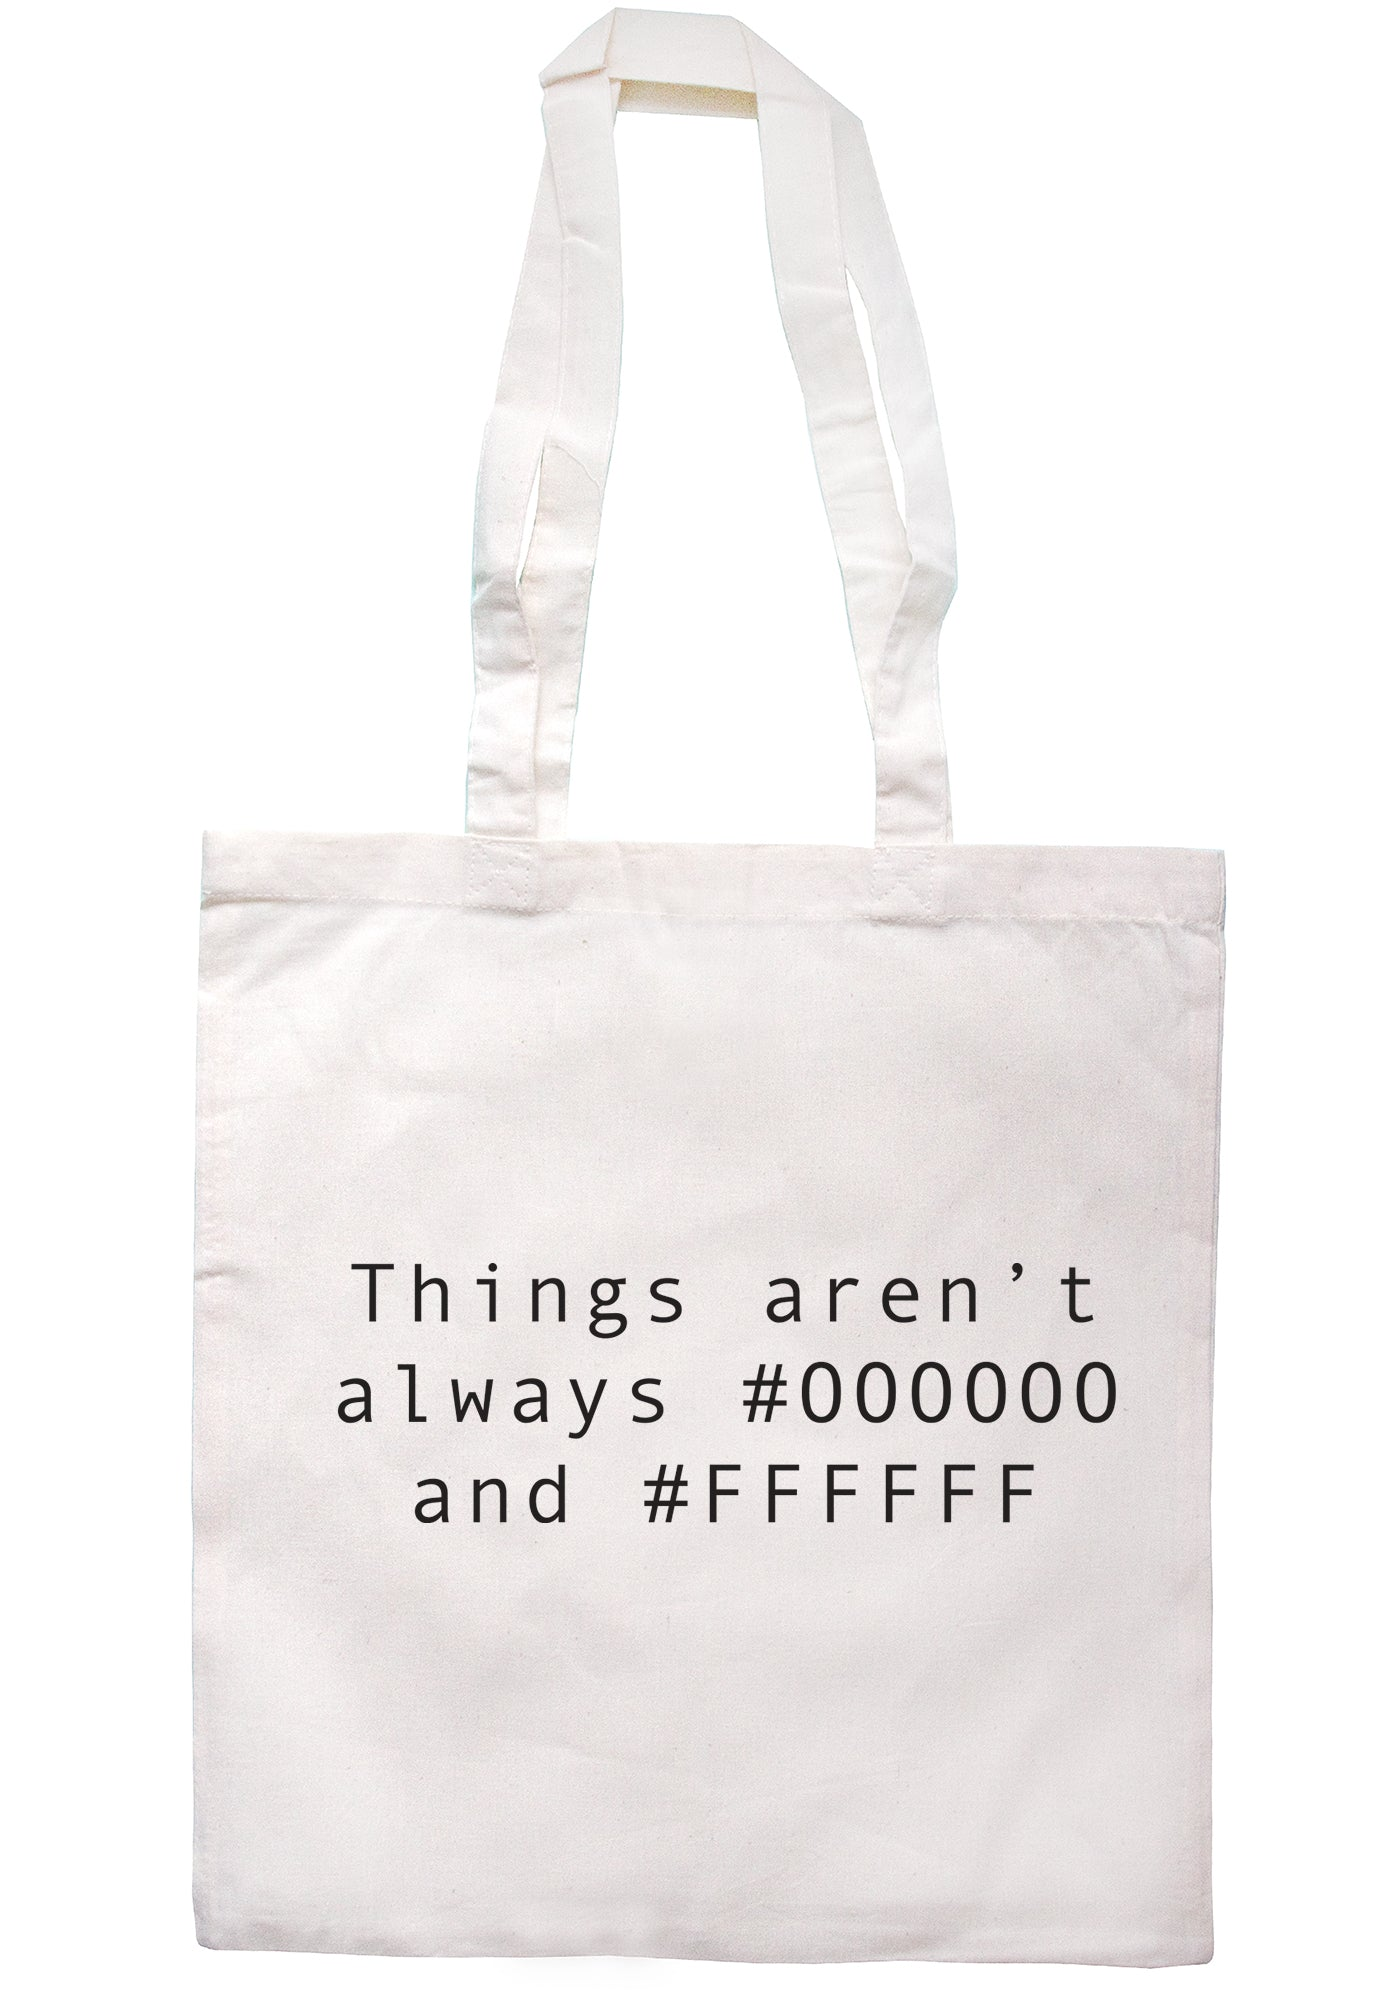 Things Aren't Always Black Or White Tote Bag K2439 - Illustrated Identity Ltd.